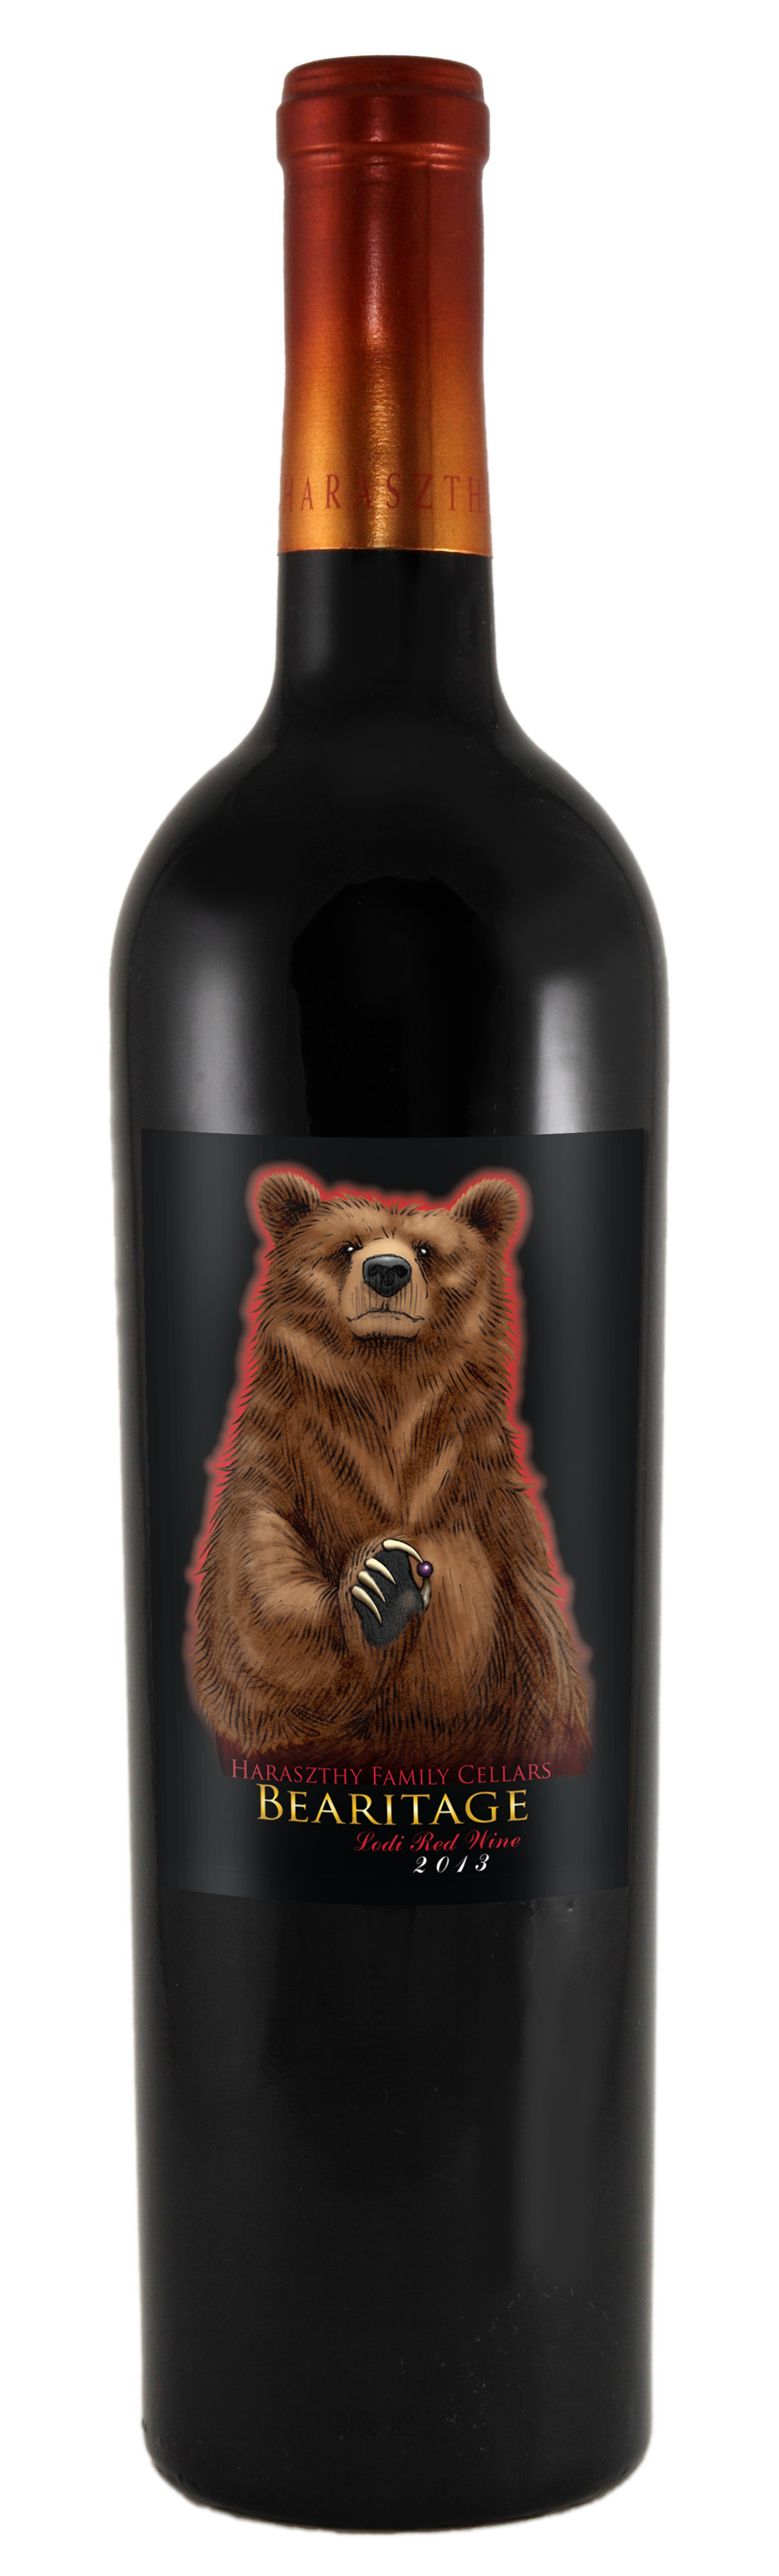 Haraszthy Family Cellars Releases Red Blend